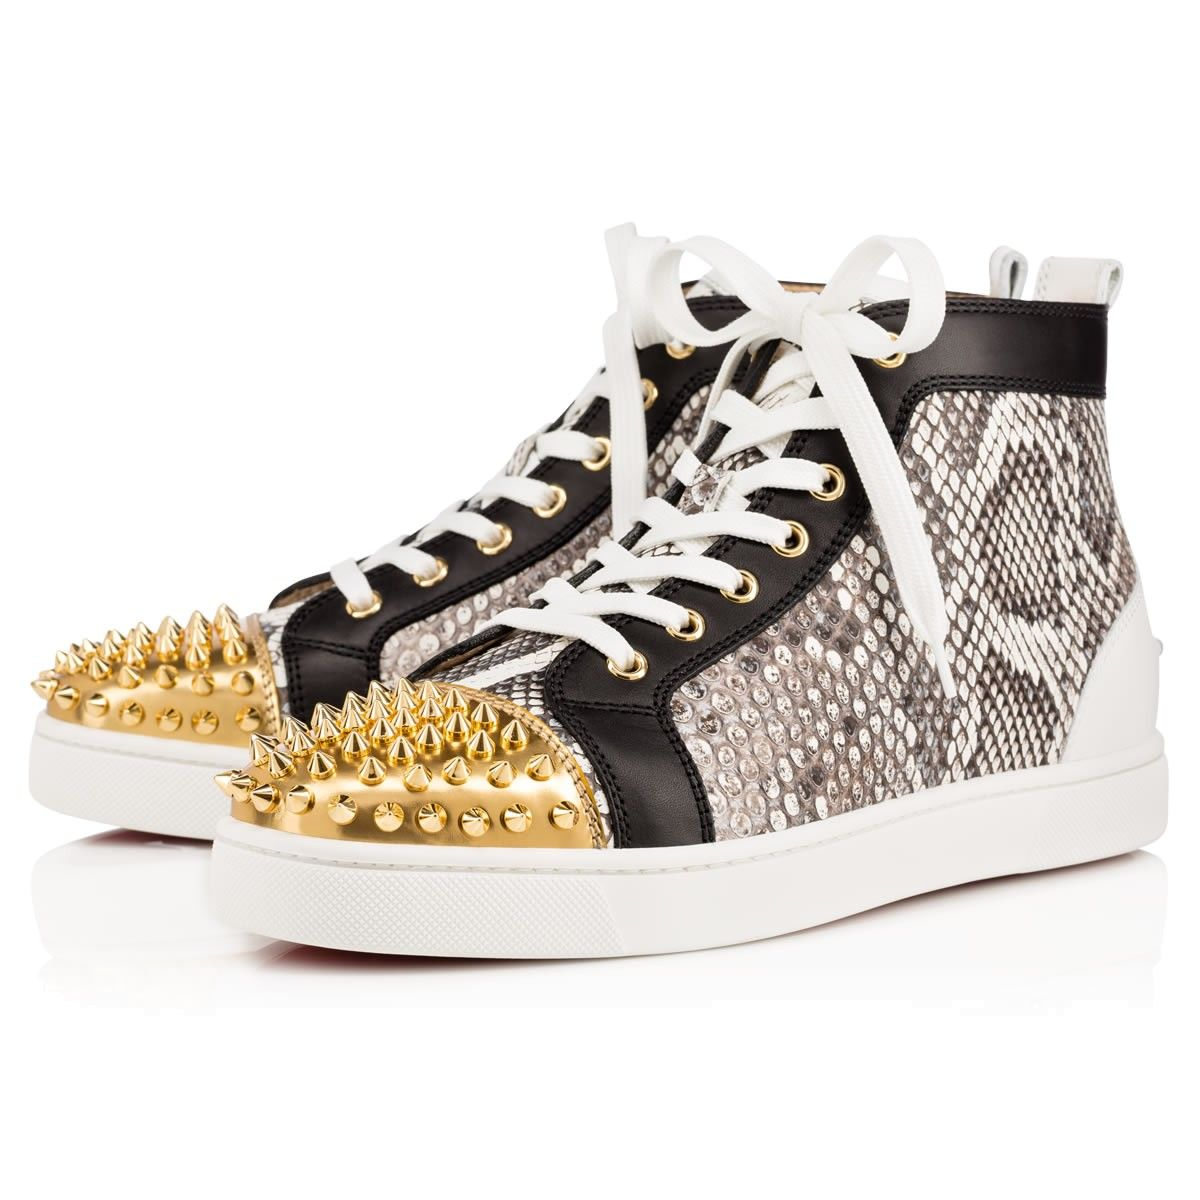 Billig Christian Louboutin Lou Spikes Python Herren High Top